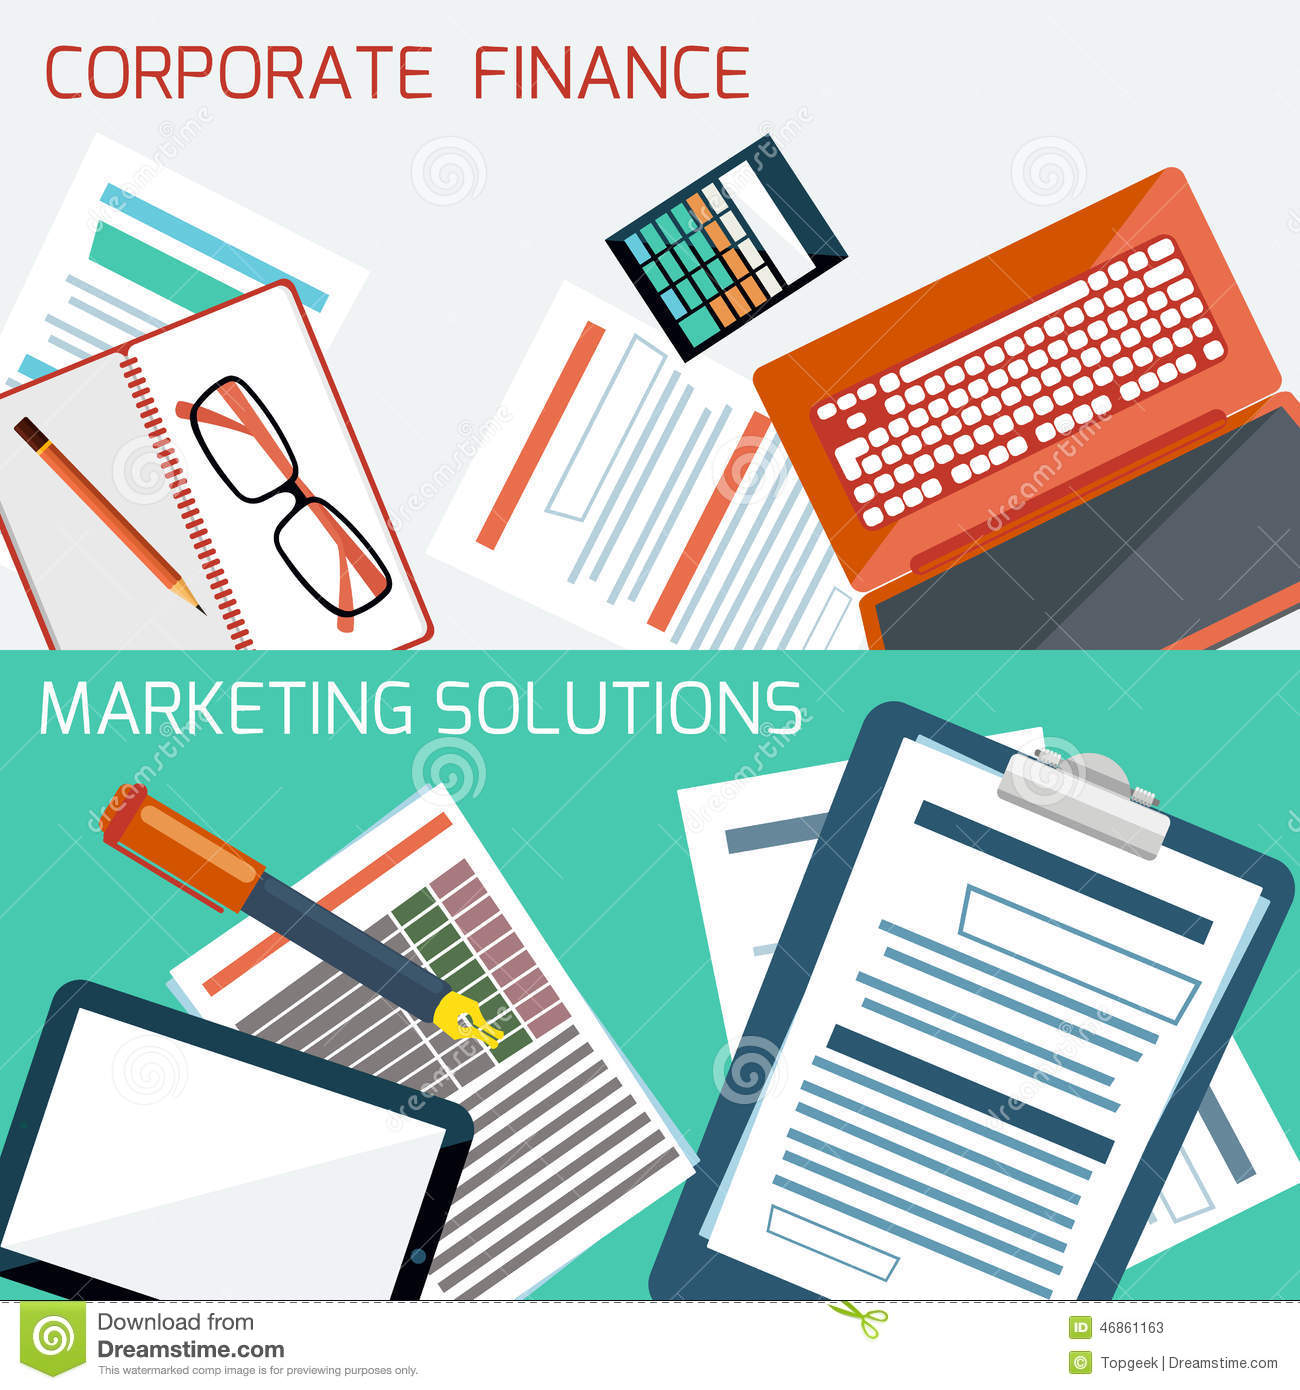 concept-corporate-finance-marketing-solution-flat-design-analysis-analytics-planning-plan-strategy-research-46861163.jpg